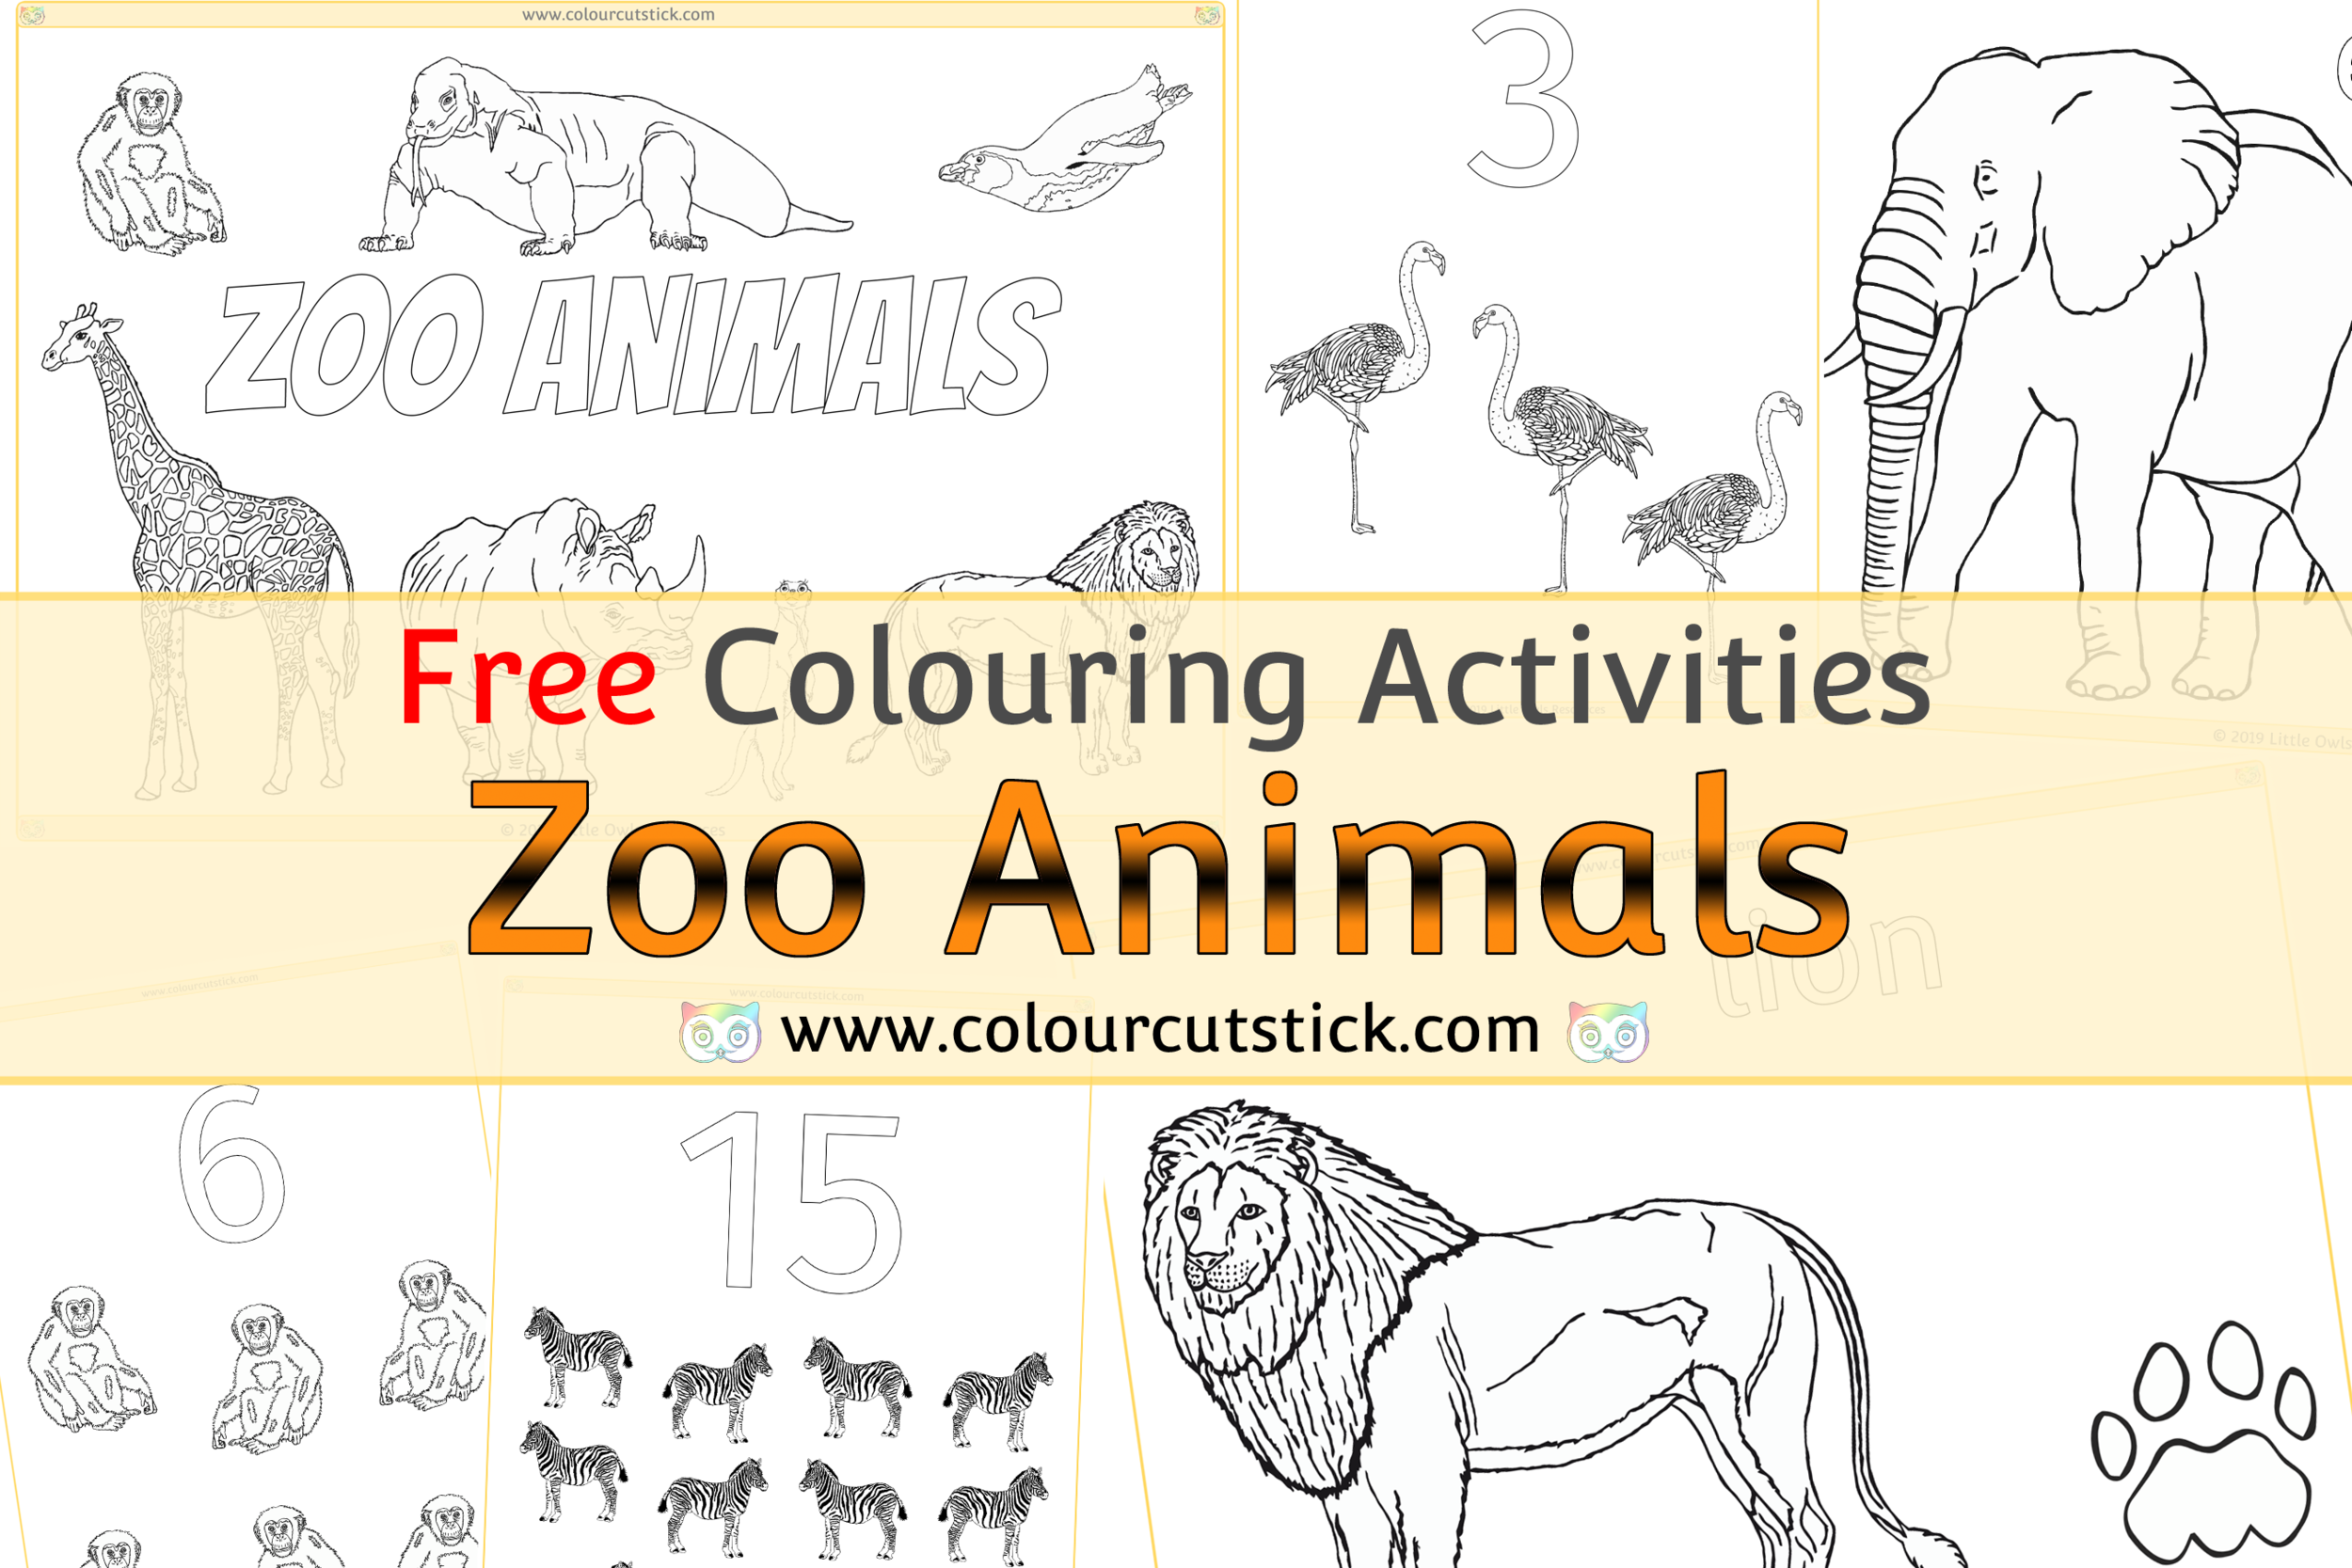 Free Zoo Animals Colouring Coloring Pages For Children Kids Toddlers Preschoolers Early Years Colour Cut Stick Free Colouring Activities